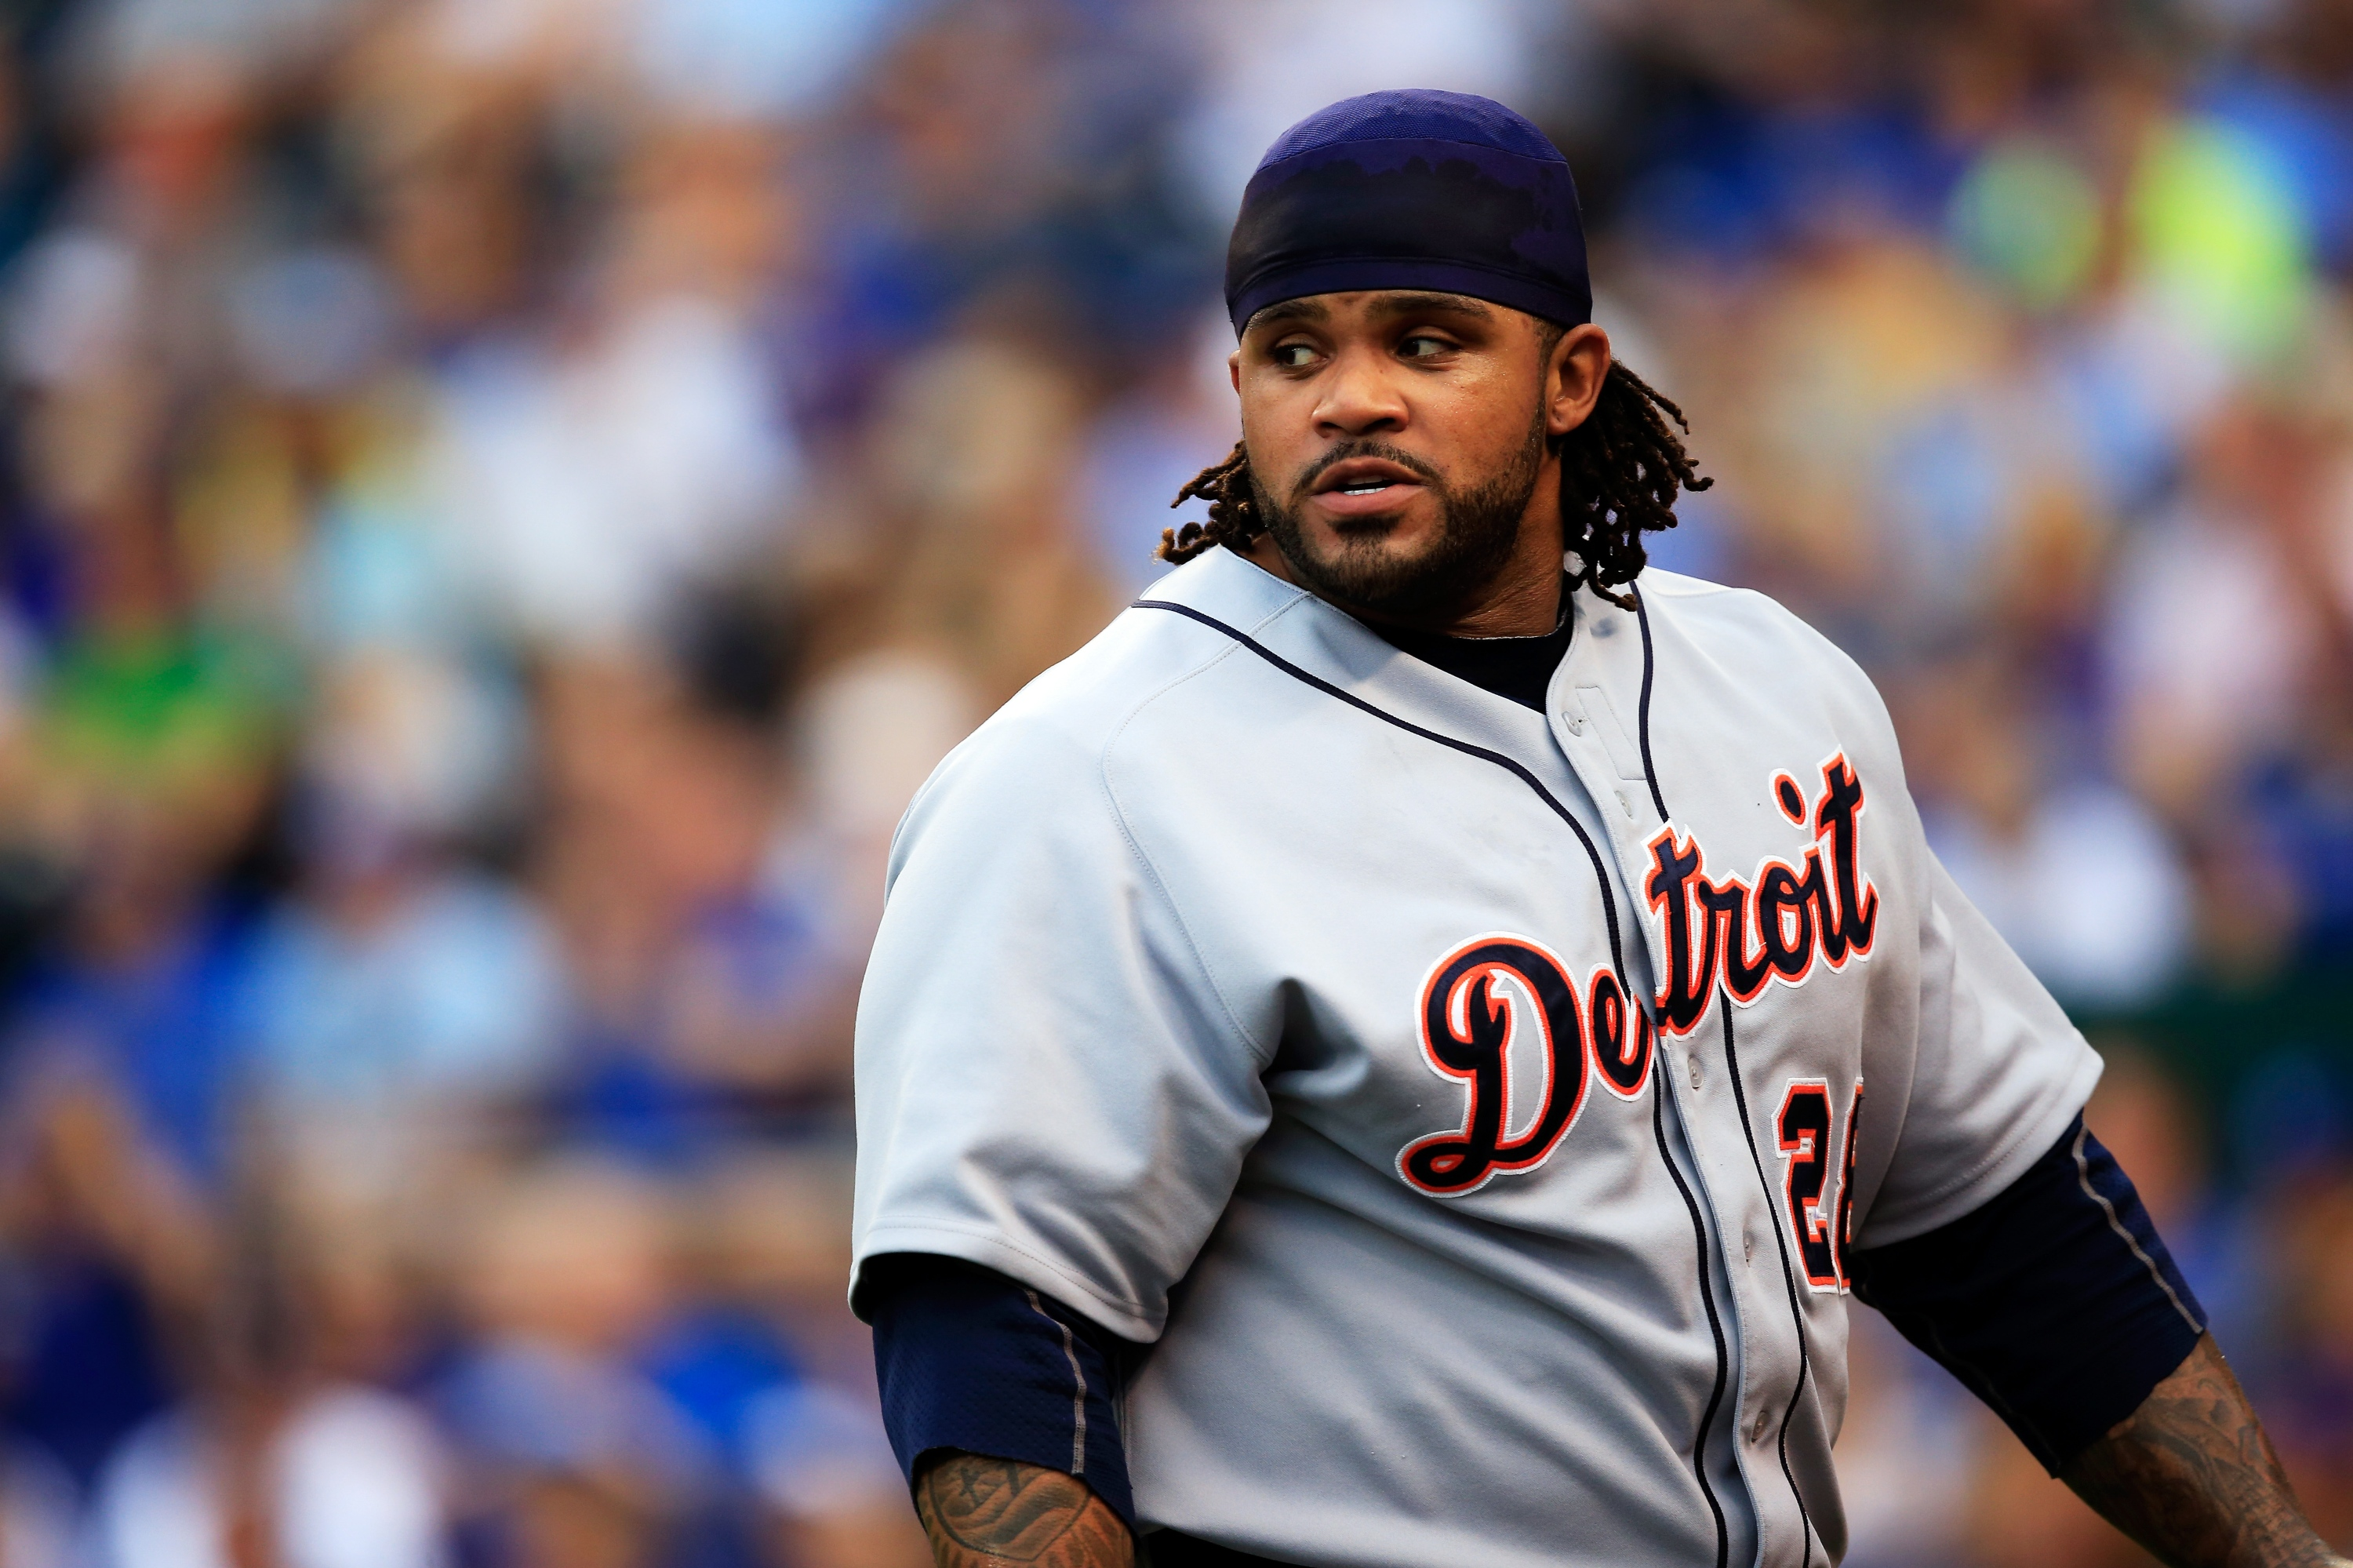 Prince Fielder hasn't missed a game since September of 2010. (Getty Images)